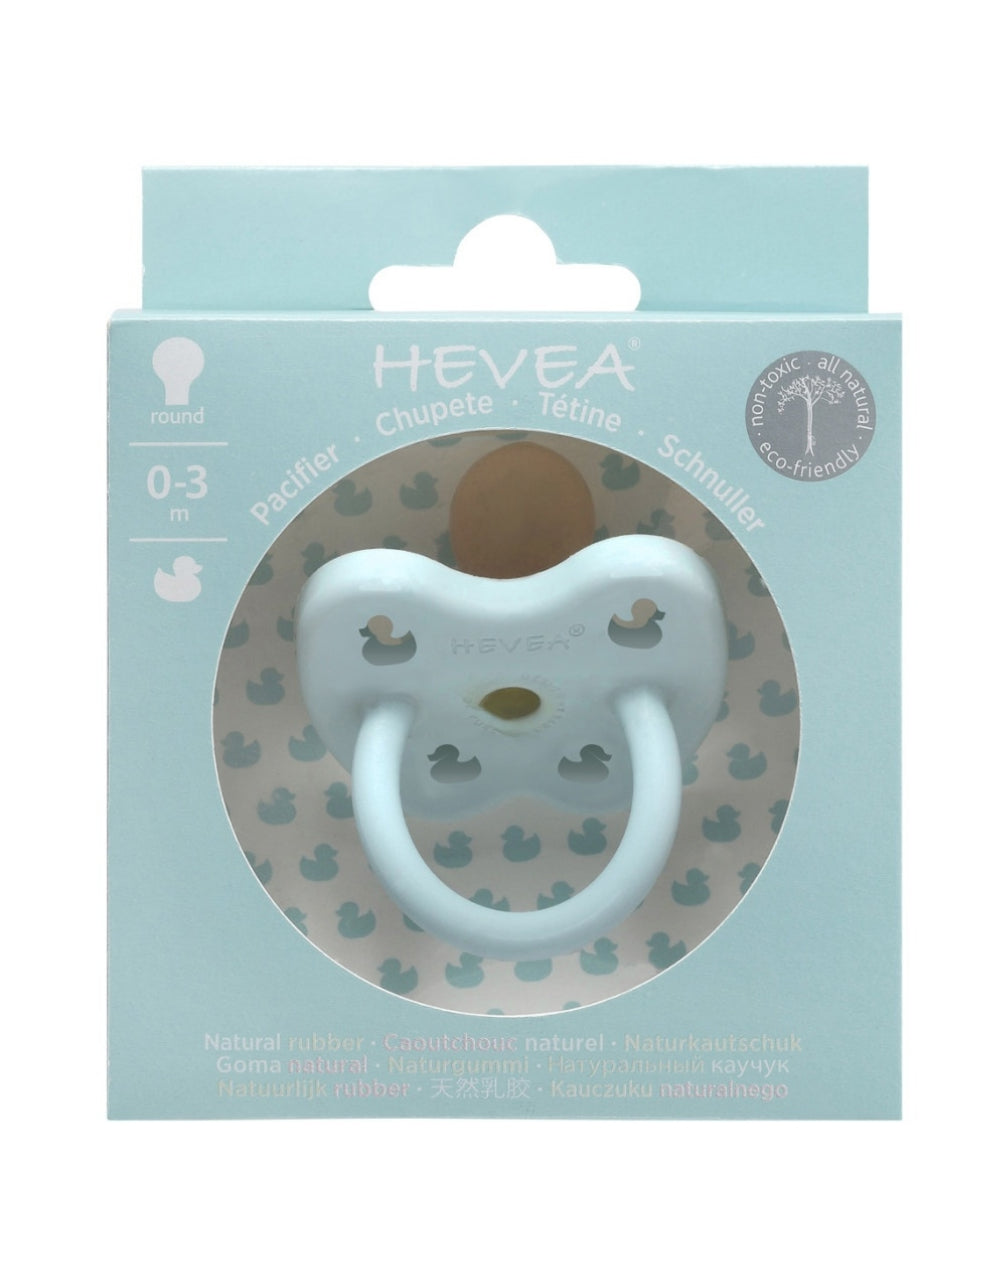 HEVEA natural rubber orthodontic pacifier 0-3 months baby blue color